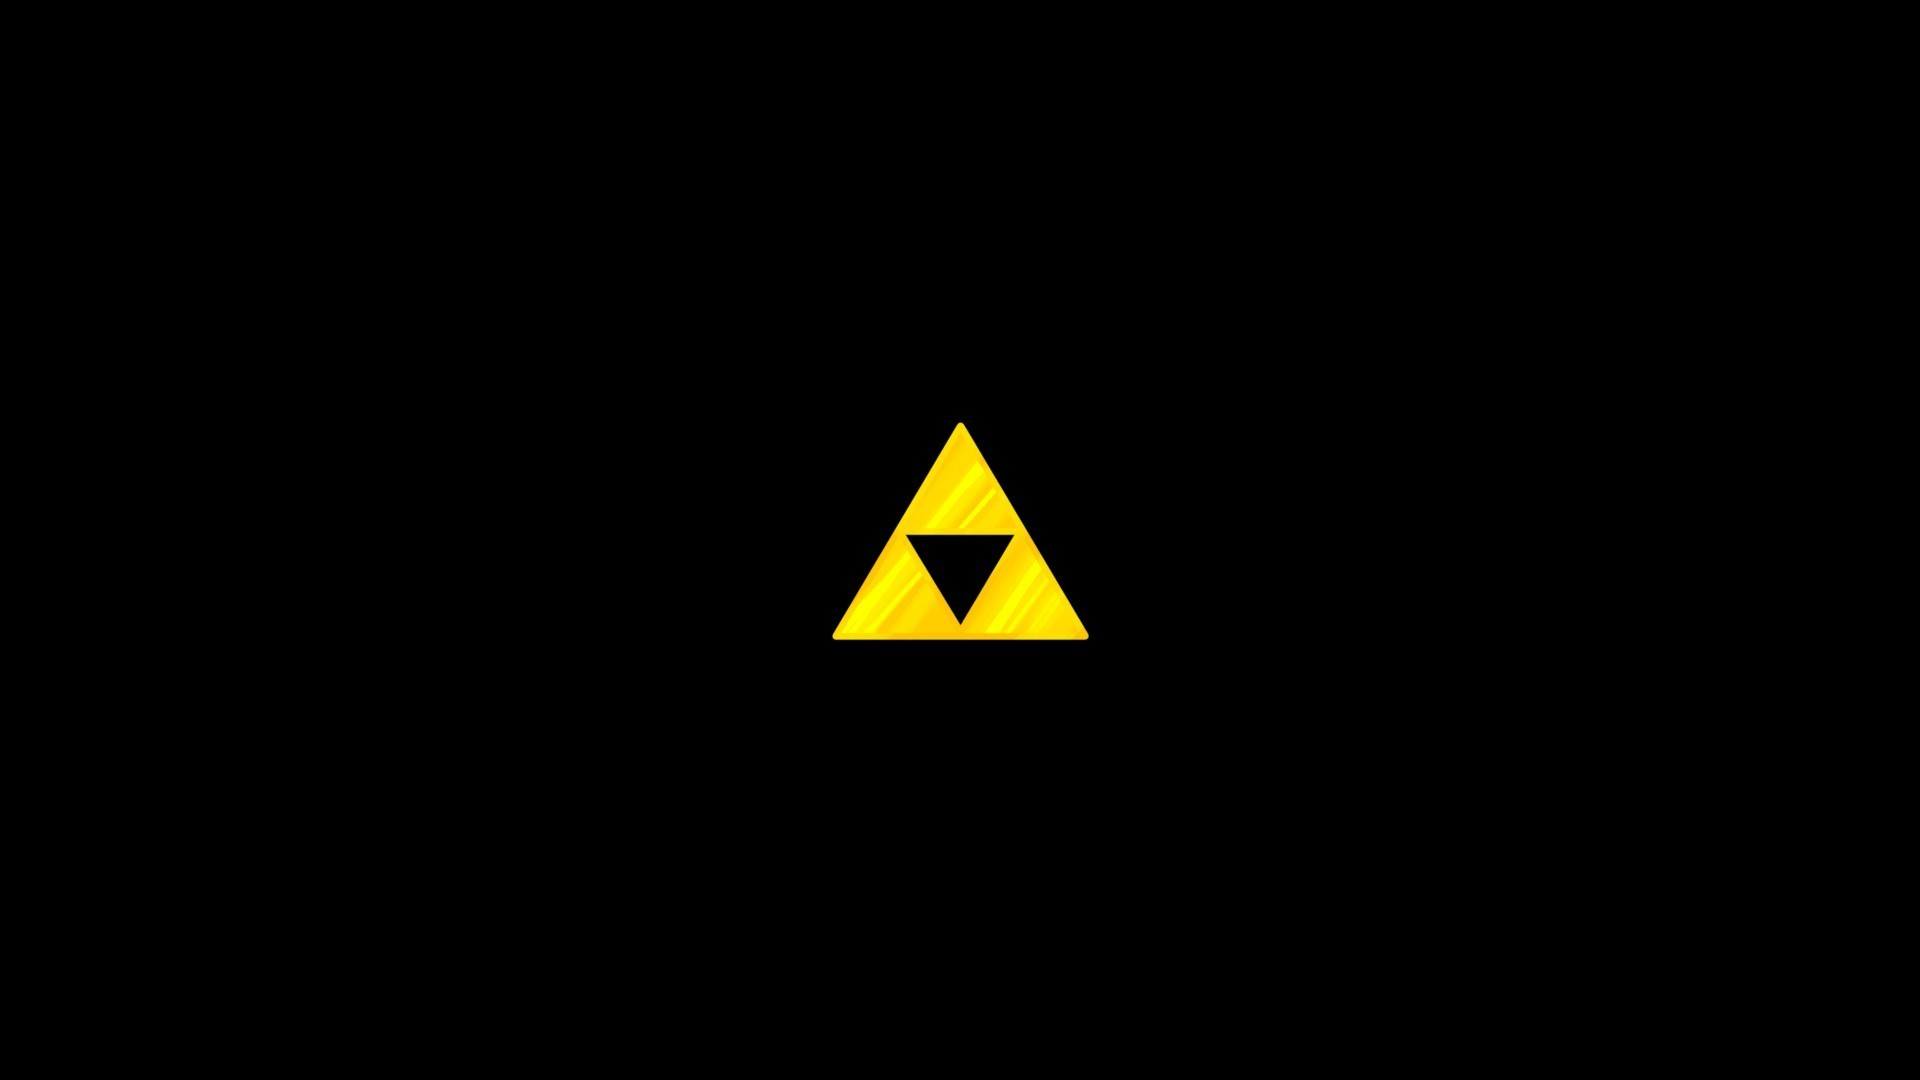 the legend of zelda black background simple triforce wallpaper